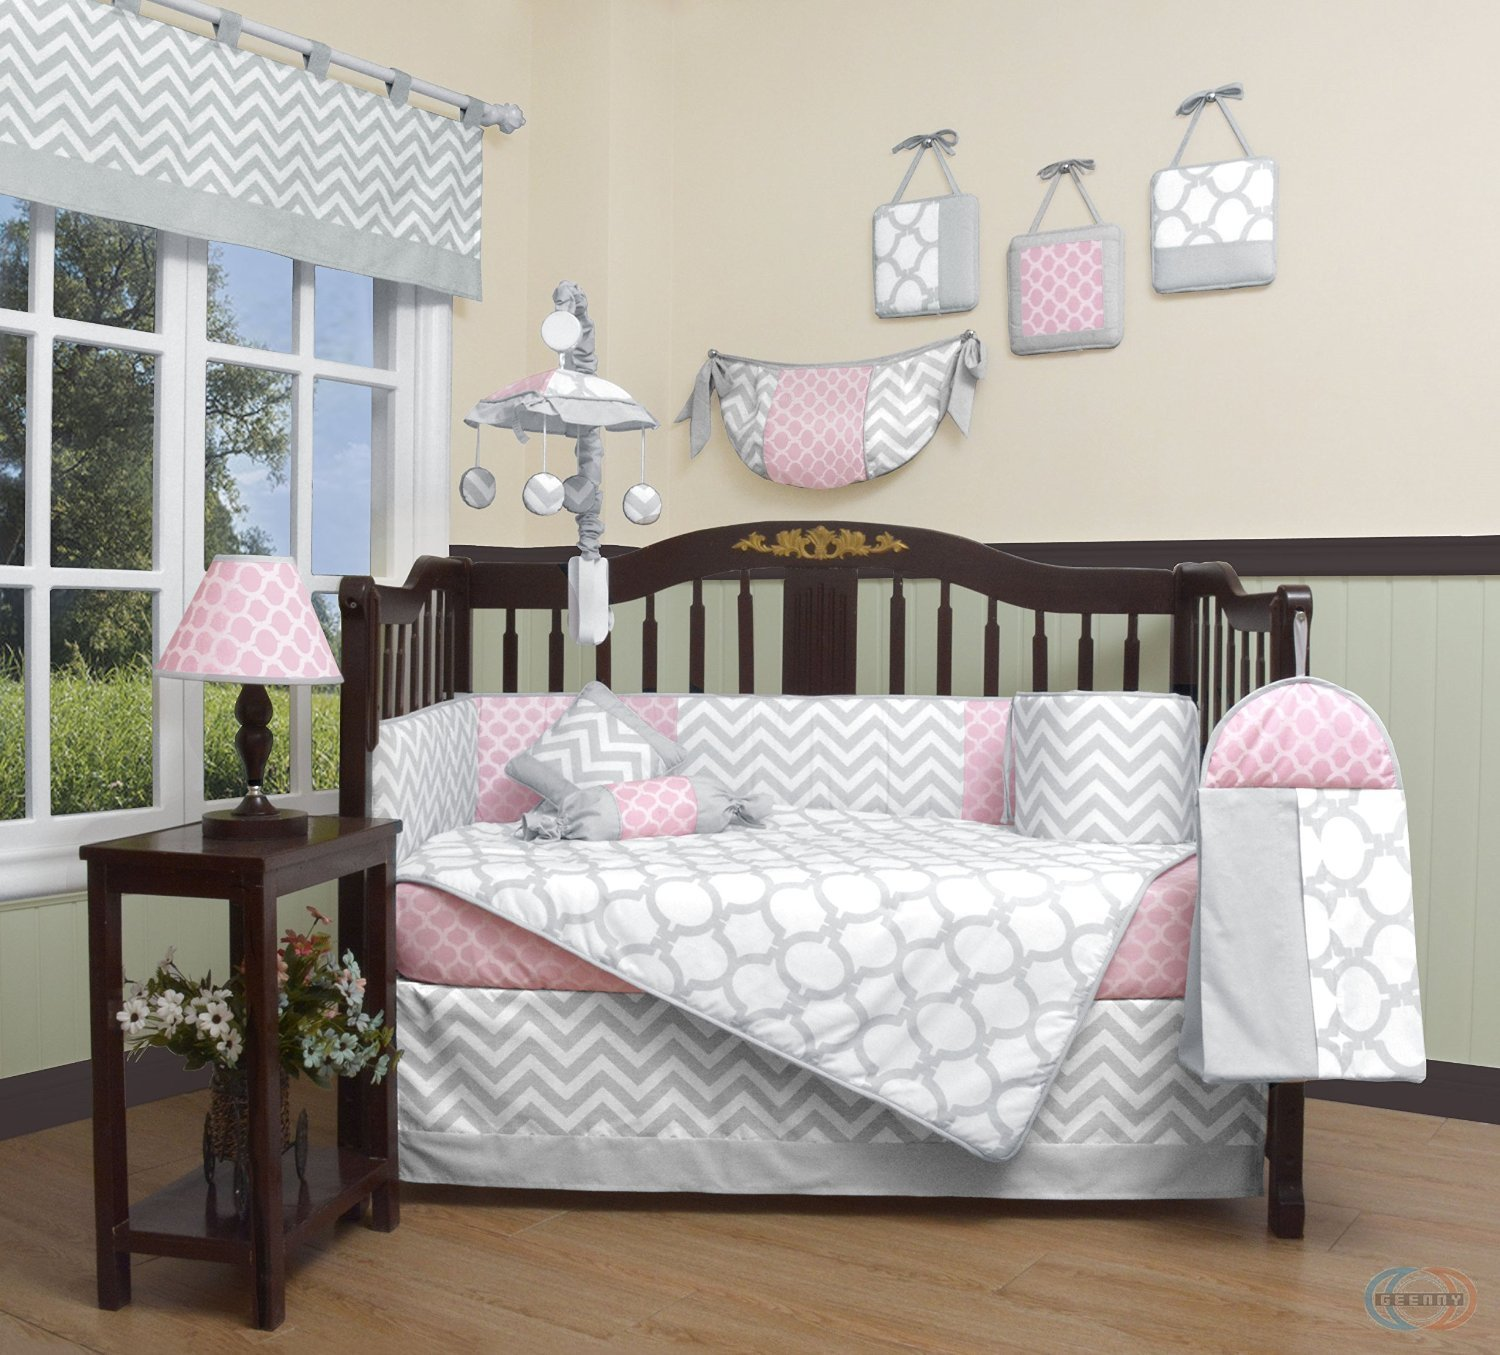 Stylish baby crib sets amazon.com : geenny boutique baby 13 piece crib bedding set, salmon  pink/gray zslqtvu